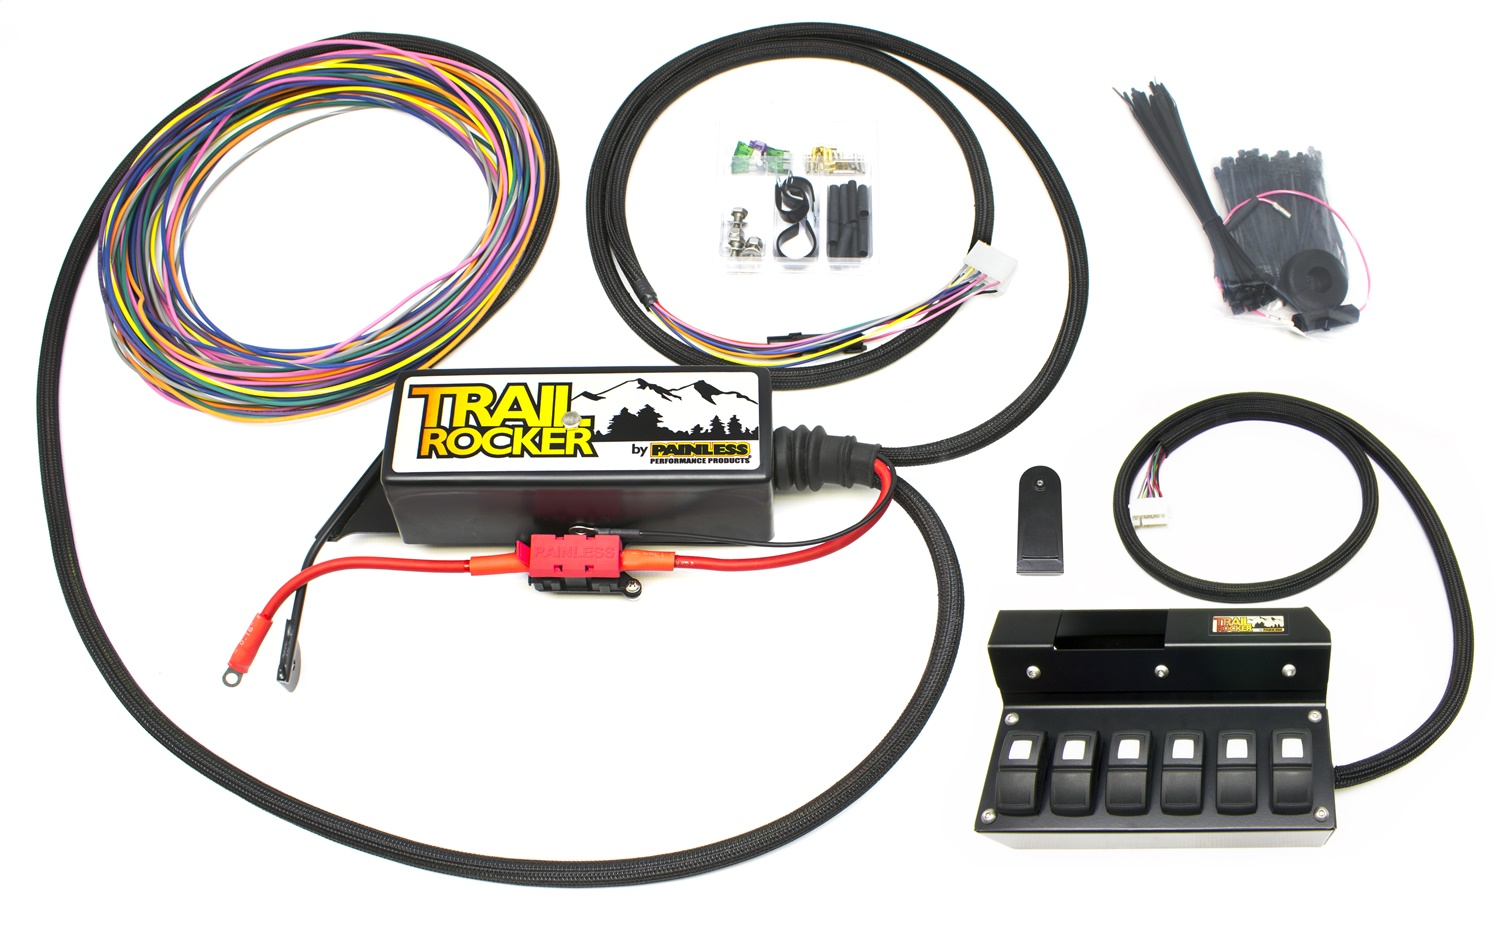 Painless 57004 Trail Rocker System Jeep Wrangler JK 2009-18 w/Overhead 6 Switch Box (W/Auto Dimming Mirror Only)